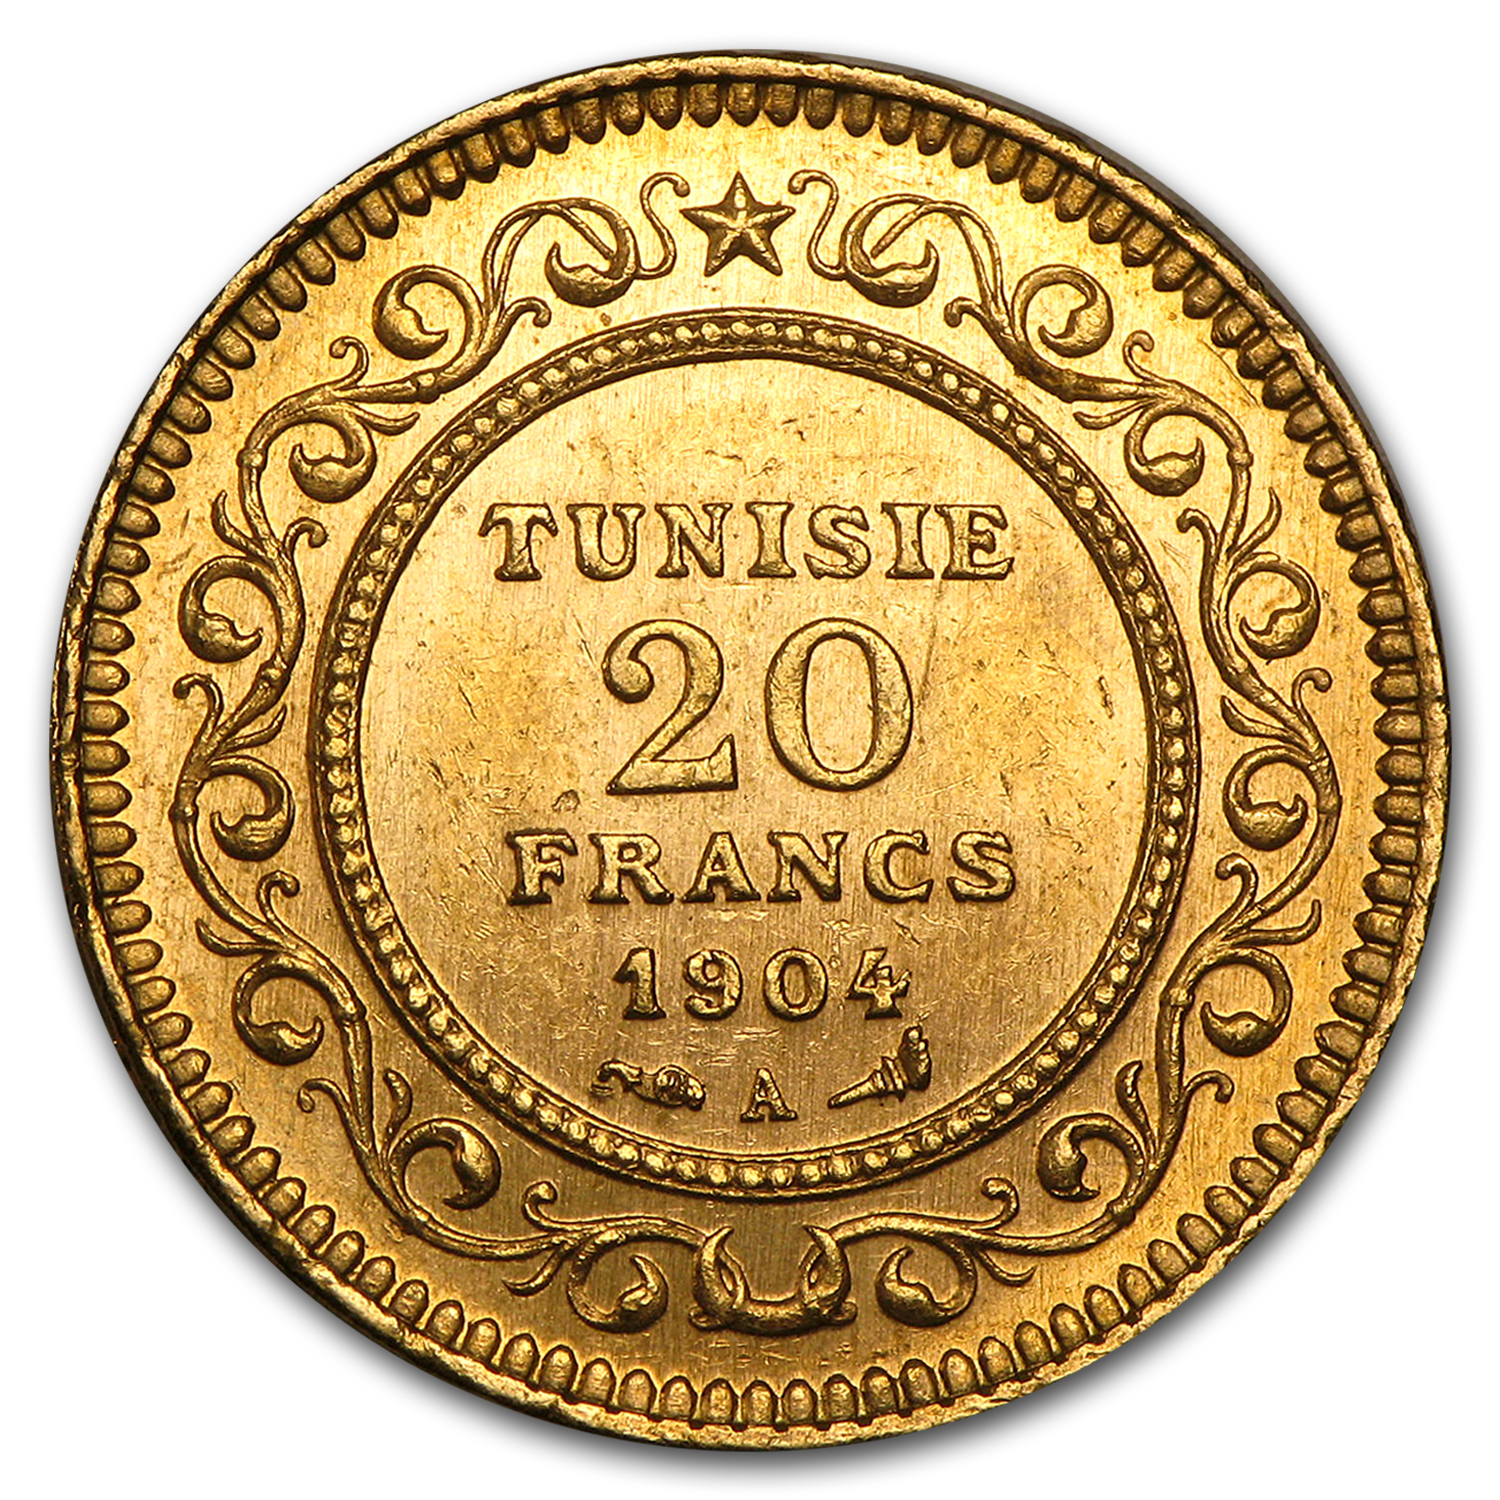 Tunisia Gold 20 Francs Paris Mint BU